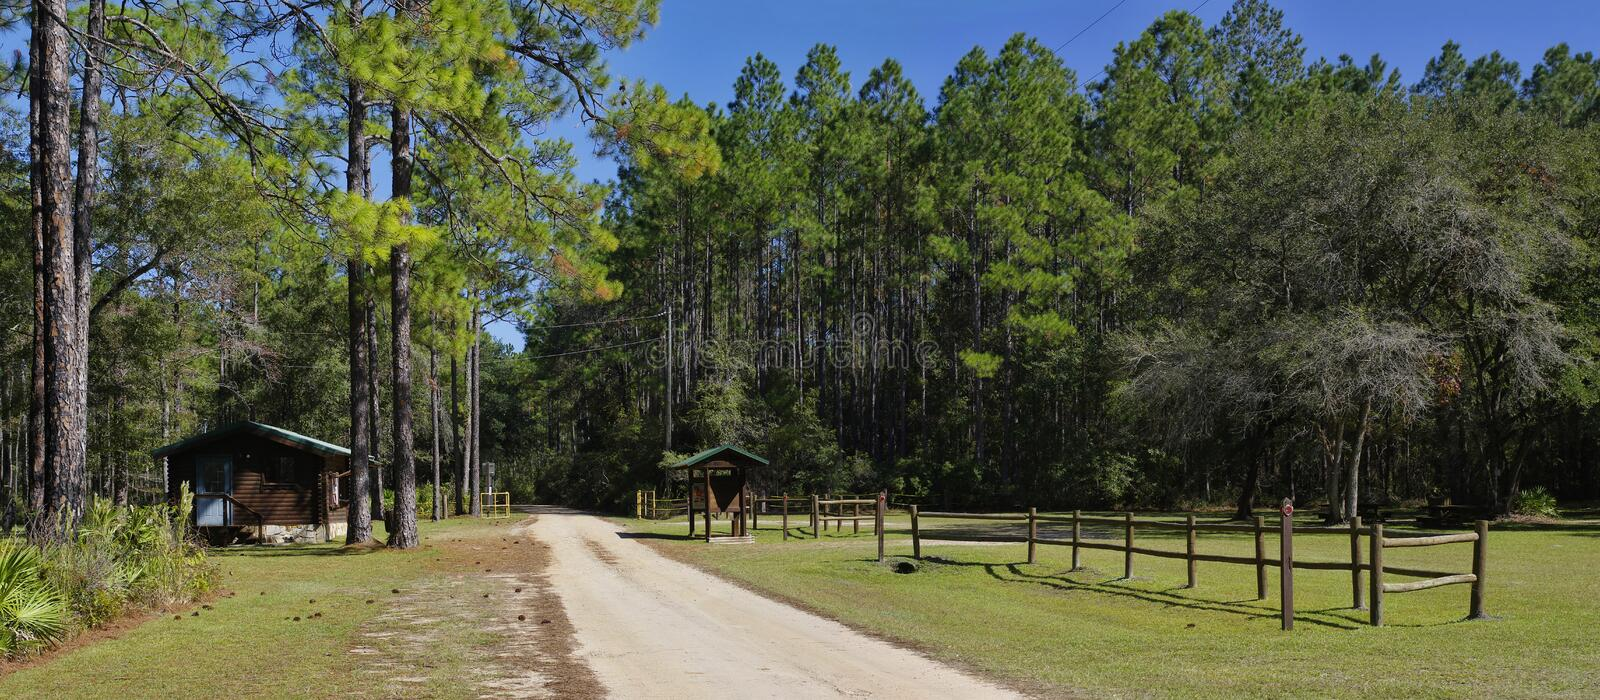 The picnic site at Lake Talquin State Park and Forest with tall glorious pine trees in Tallahass stock photos